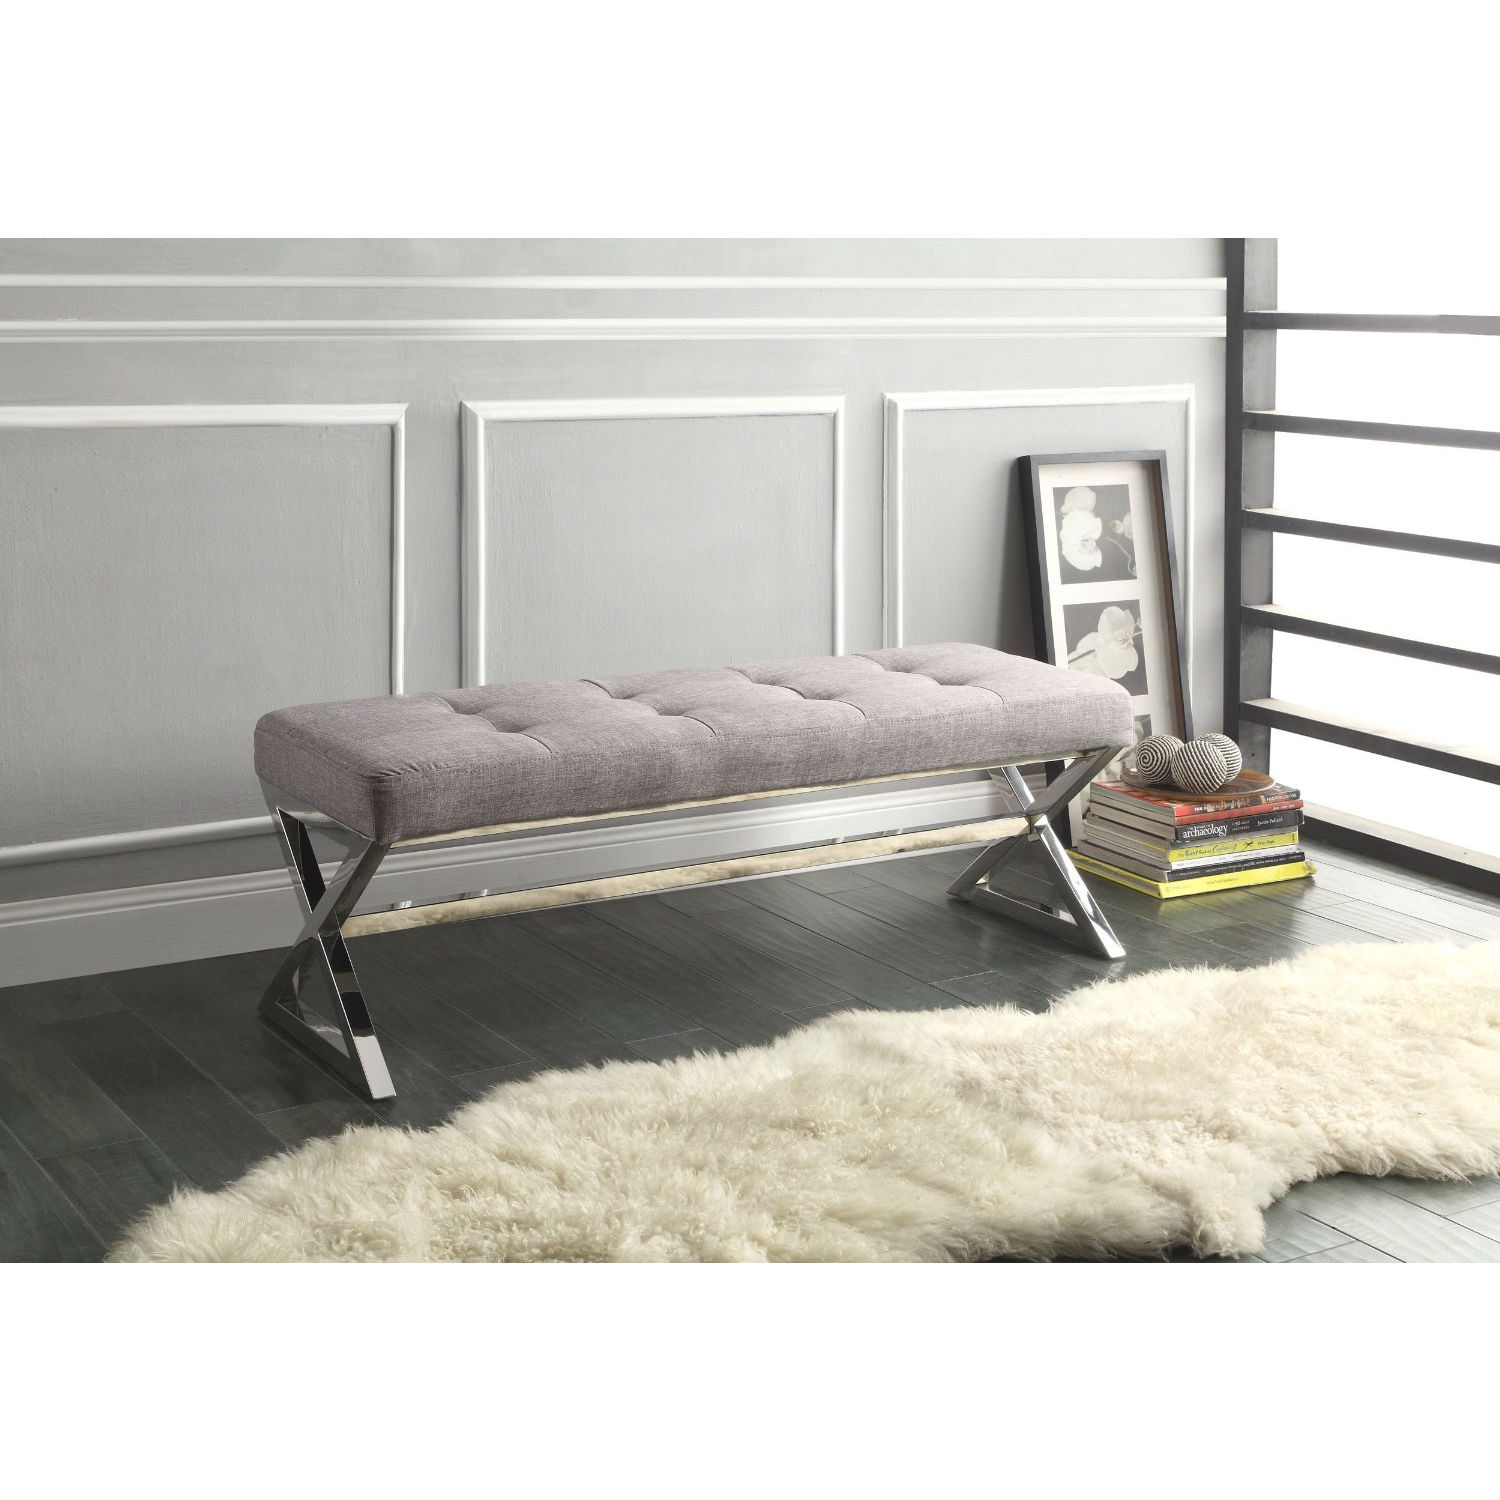 "Modern Living Room Metal Bench with Button-Tufted Grey Linen Seat, HMBG18624 :  Designed for your fashion forward home, this Modern Living Room Metal Bench with Button-Tufted Grey Linen Seat is supported by chromed metal trestle X-framing base and the seat is covered in button-tufted grey linen fabric. Also available in black bonded leather cover. Padded with fire-retardant foam for foot-resting or extra seating; Measures 48""W x 16.5""D x 18""H; Minor assembly required; Contemporary style ottoman/bench fits in any home décor and also available in Black Bonded Leather cover."